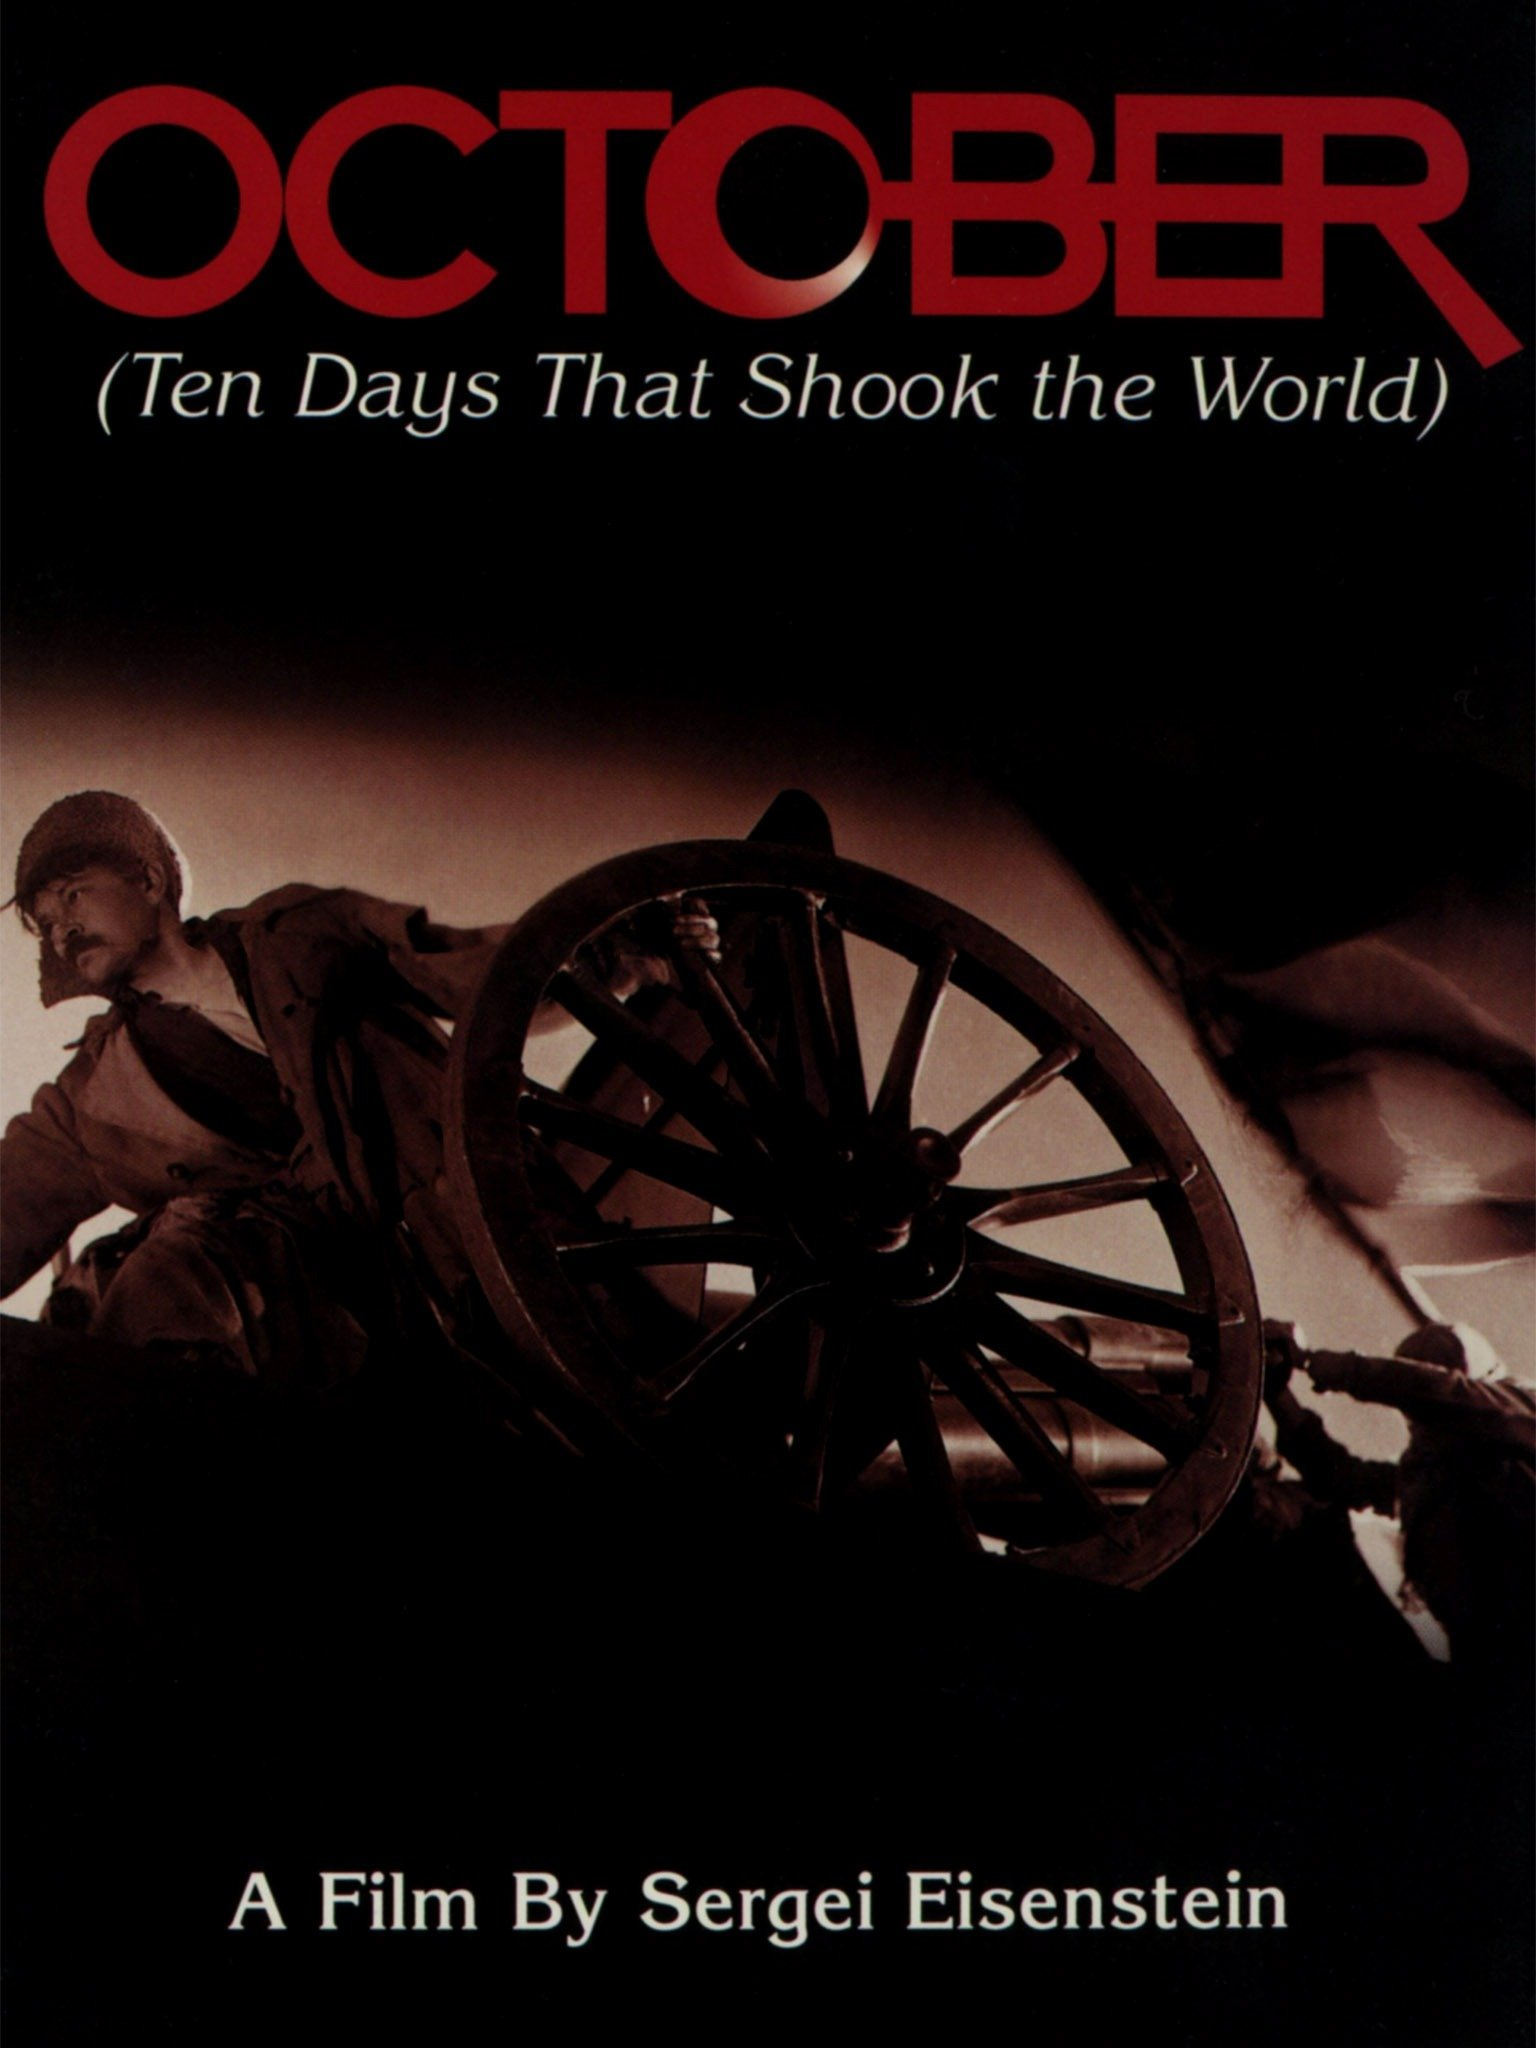 October (Ten Days that Shook the World)